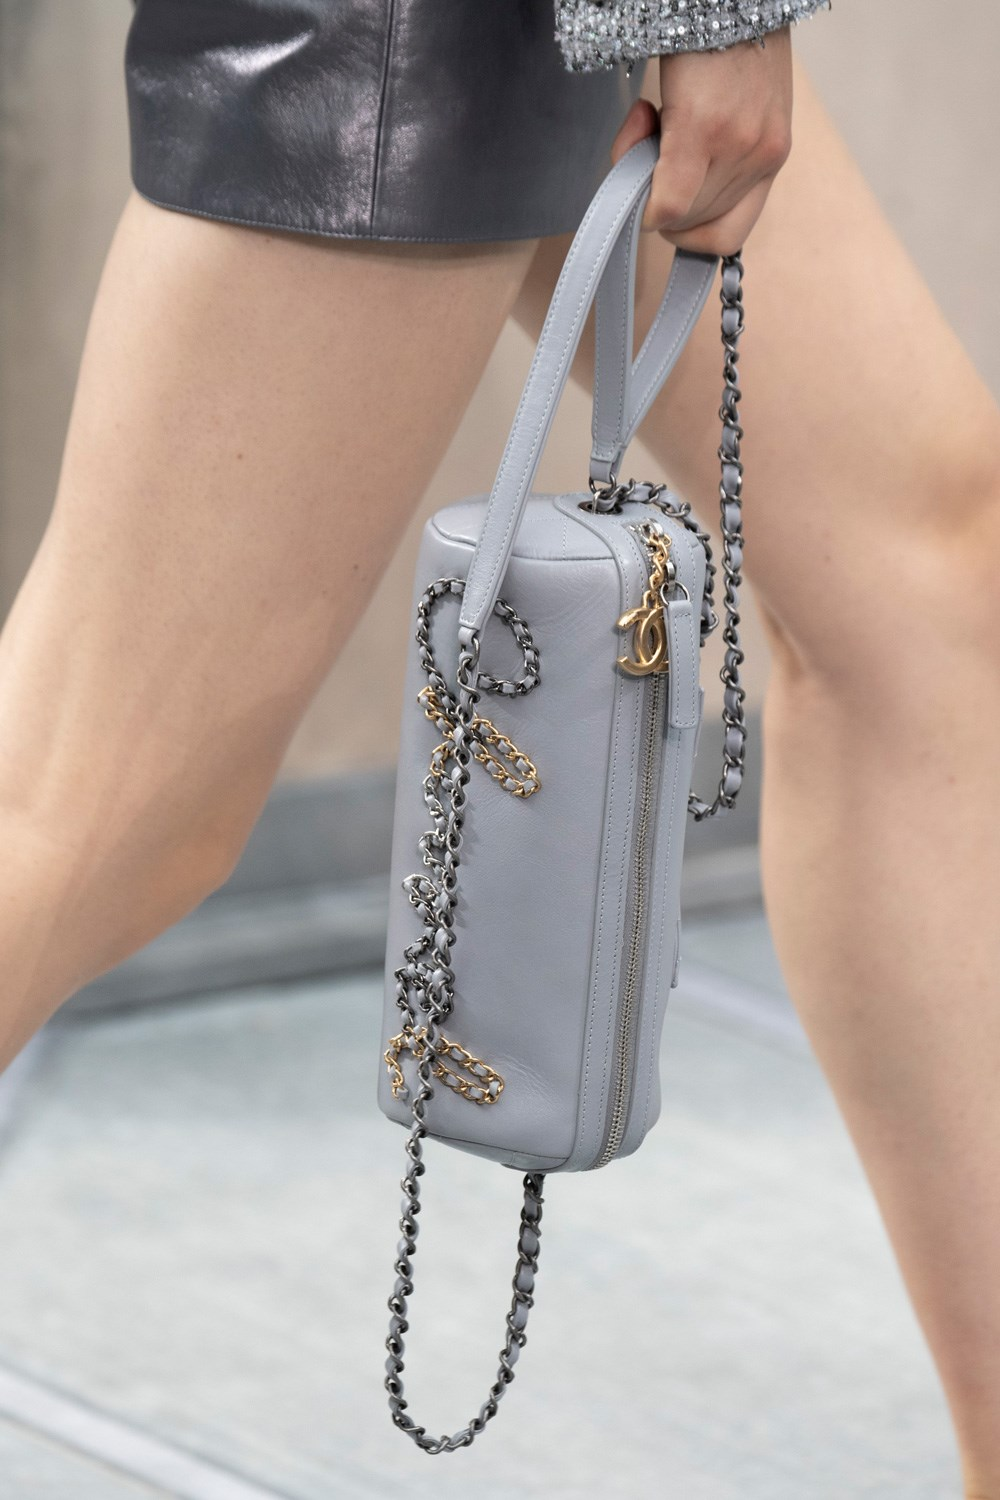 Chanel Spring 2020 Fashion Show Details